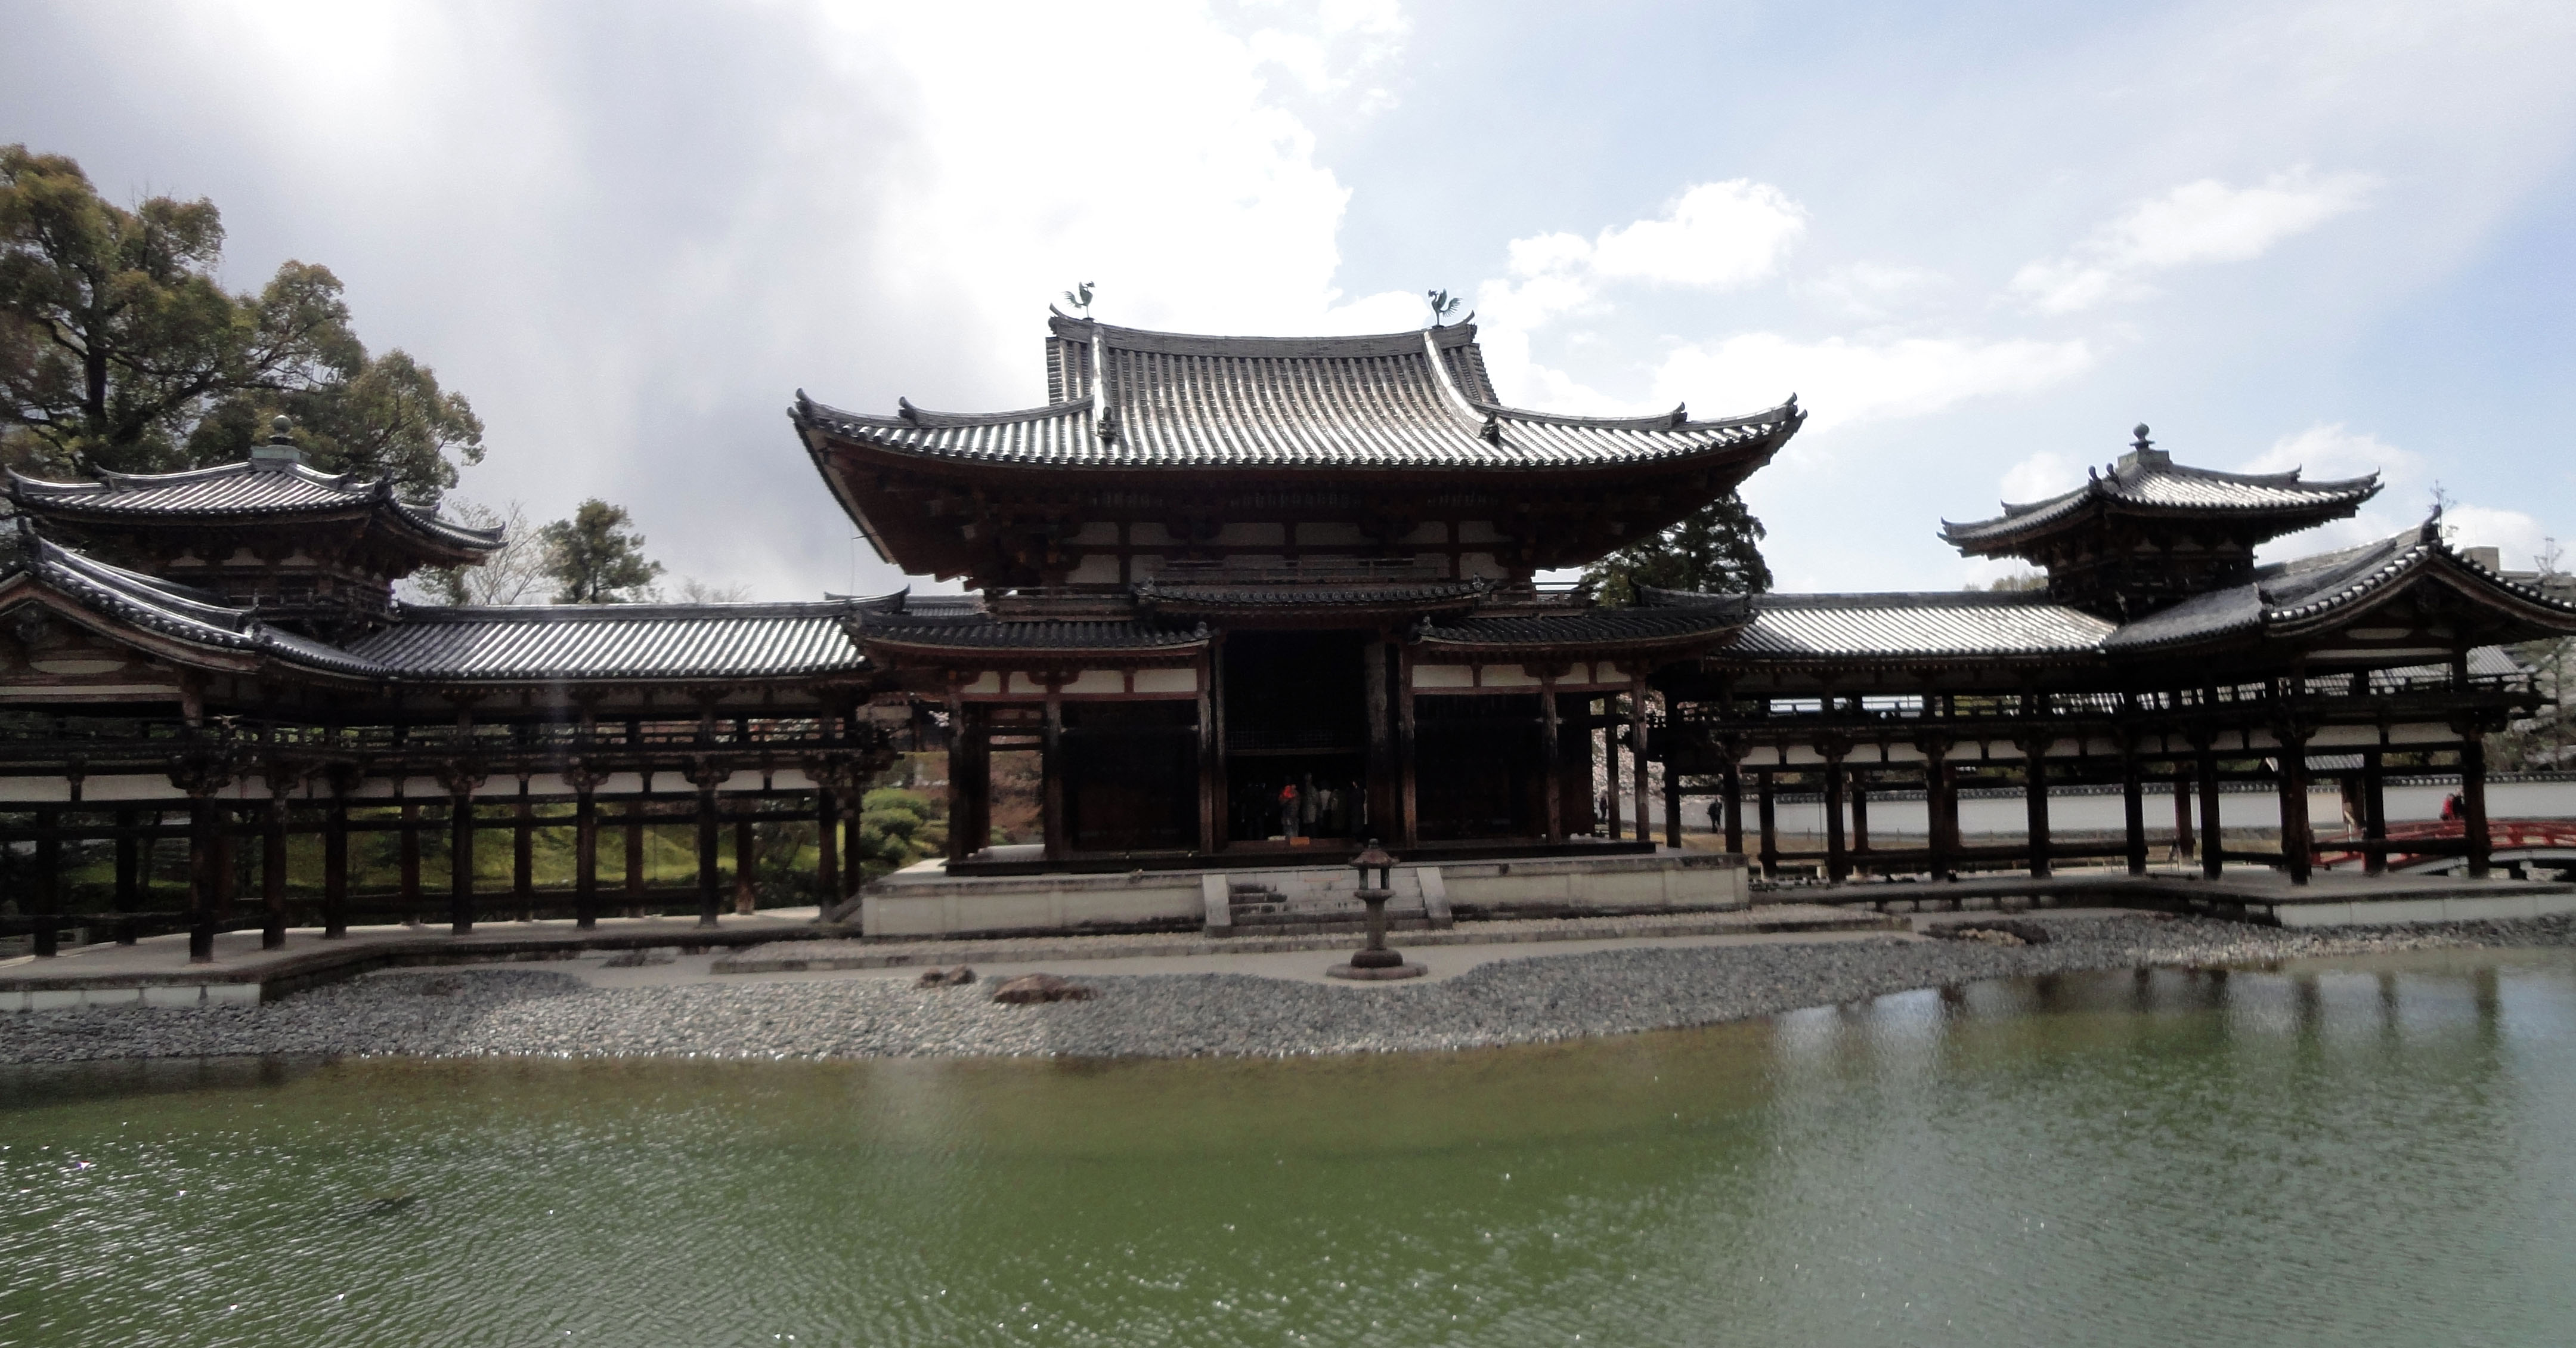 Byodo in temple Phoenix Hall Architecture Kyoto Japan 04